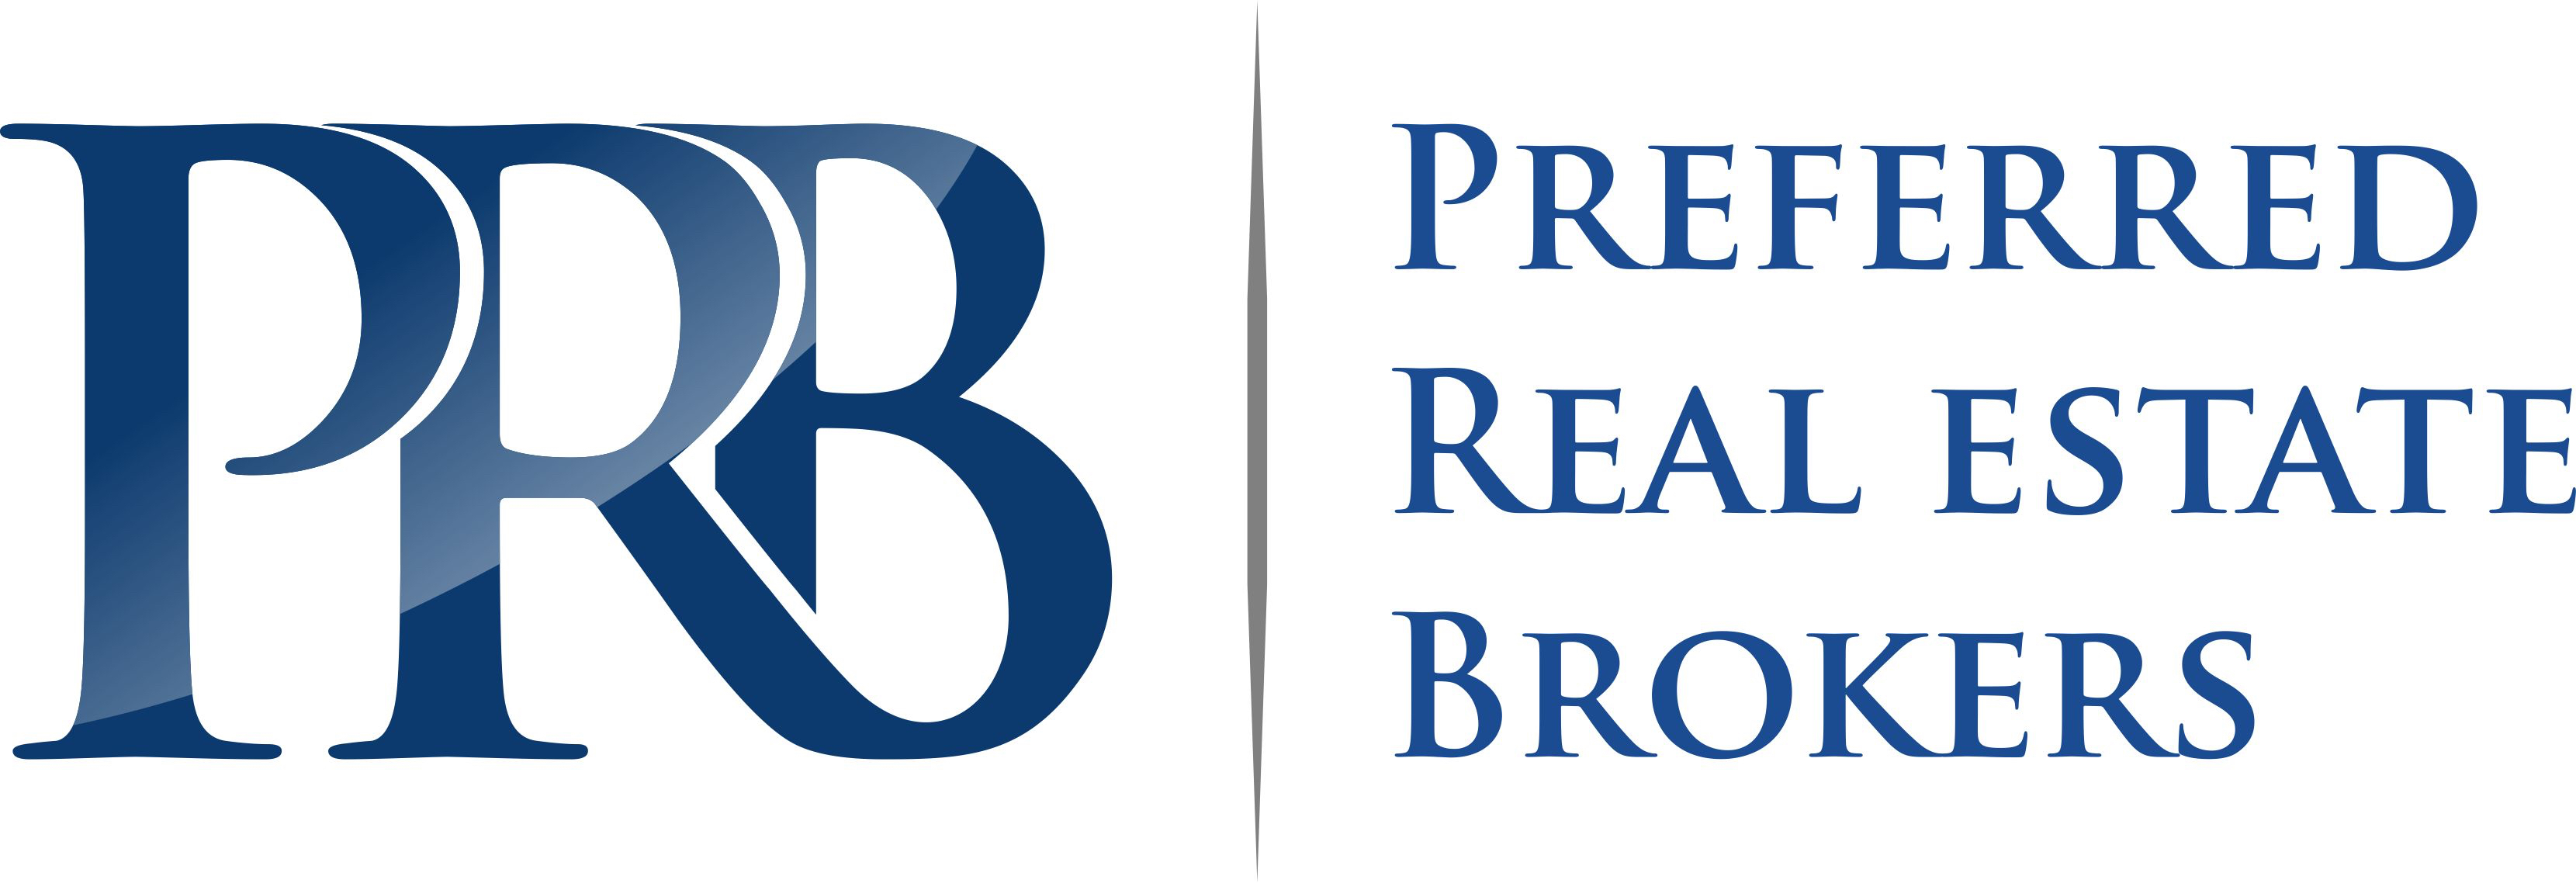 Preferred Re Brokers III